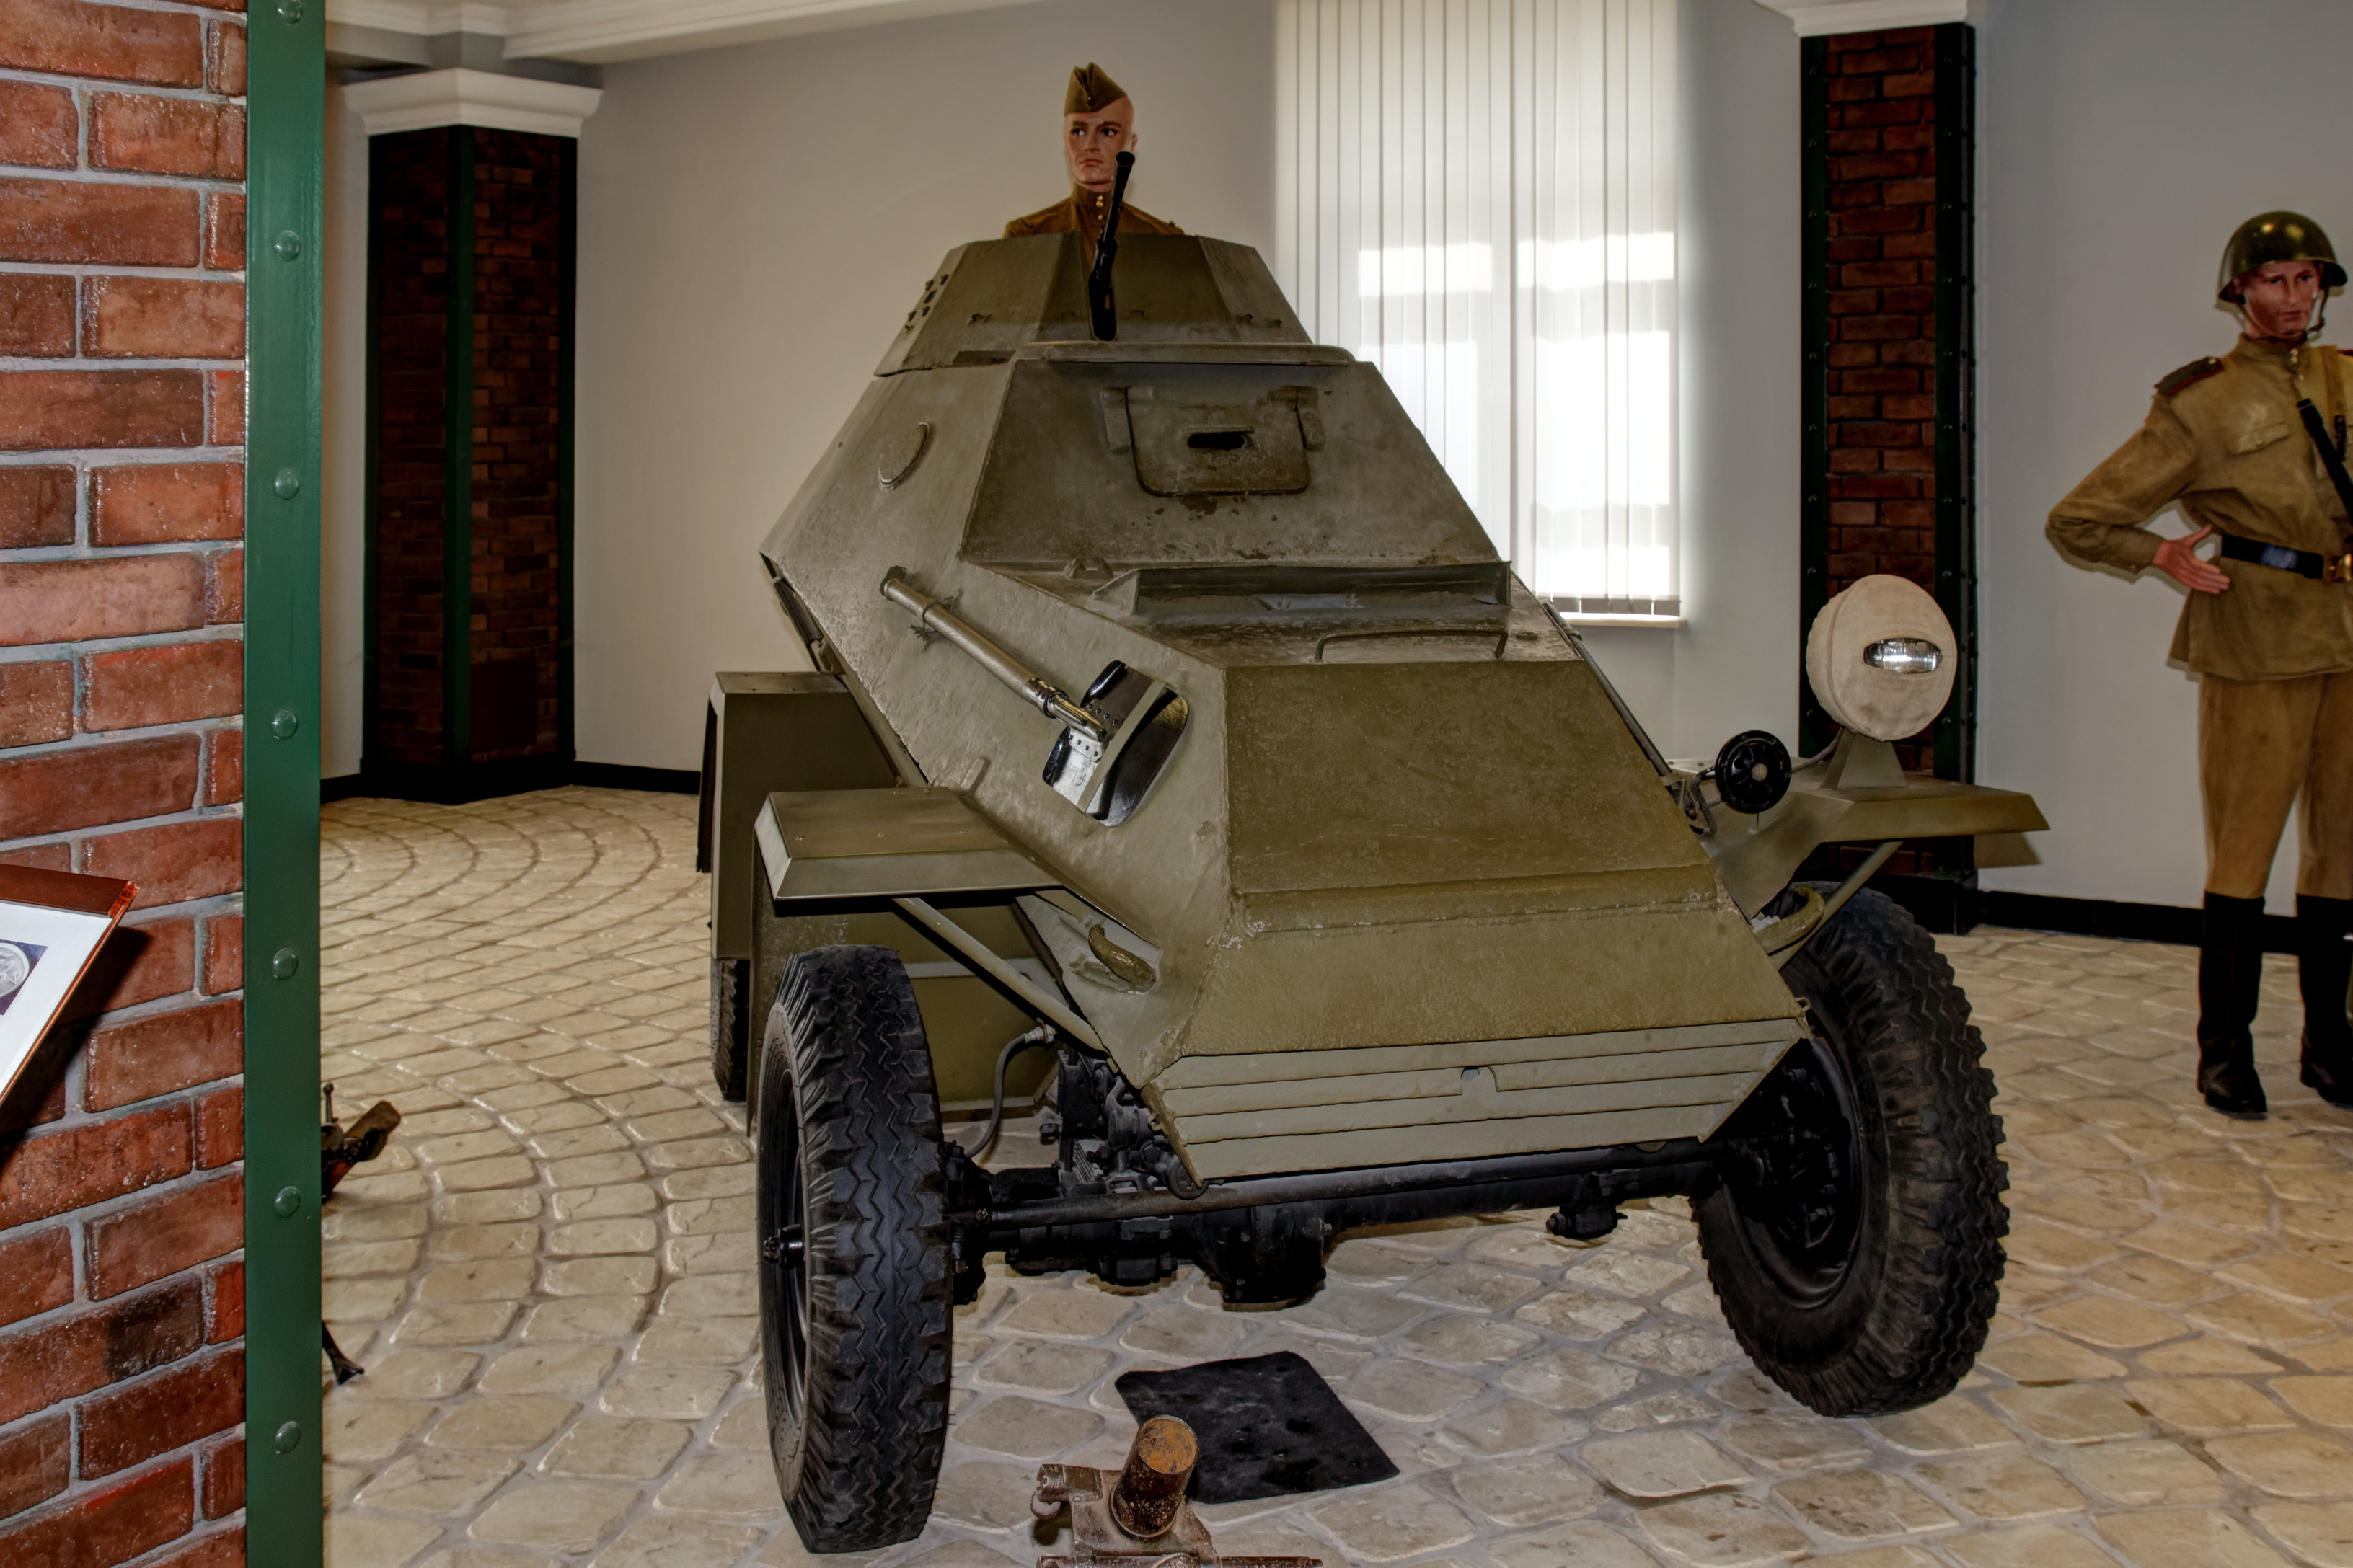 File:Arkhangelskoye Vadim Zadorozhnys Vehicle Museum Armored car ...